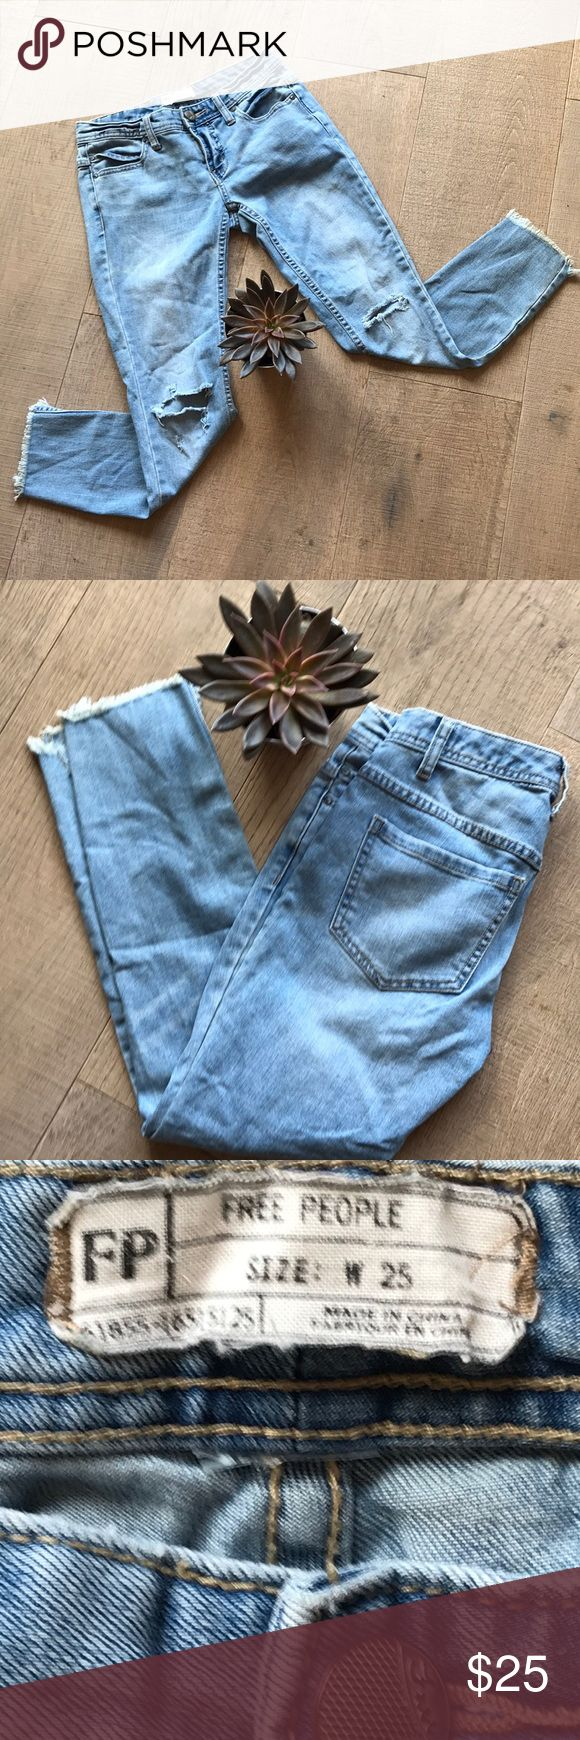 """Free People Jeans - Preloved! Jeans just get better with wear!   Measurements:    Inseam - 24"""".  Out Seam - 32"""". Free People Jeans Skinny"""